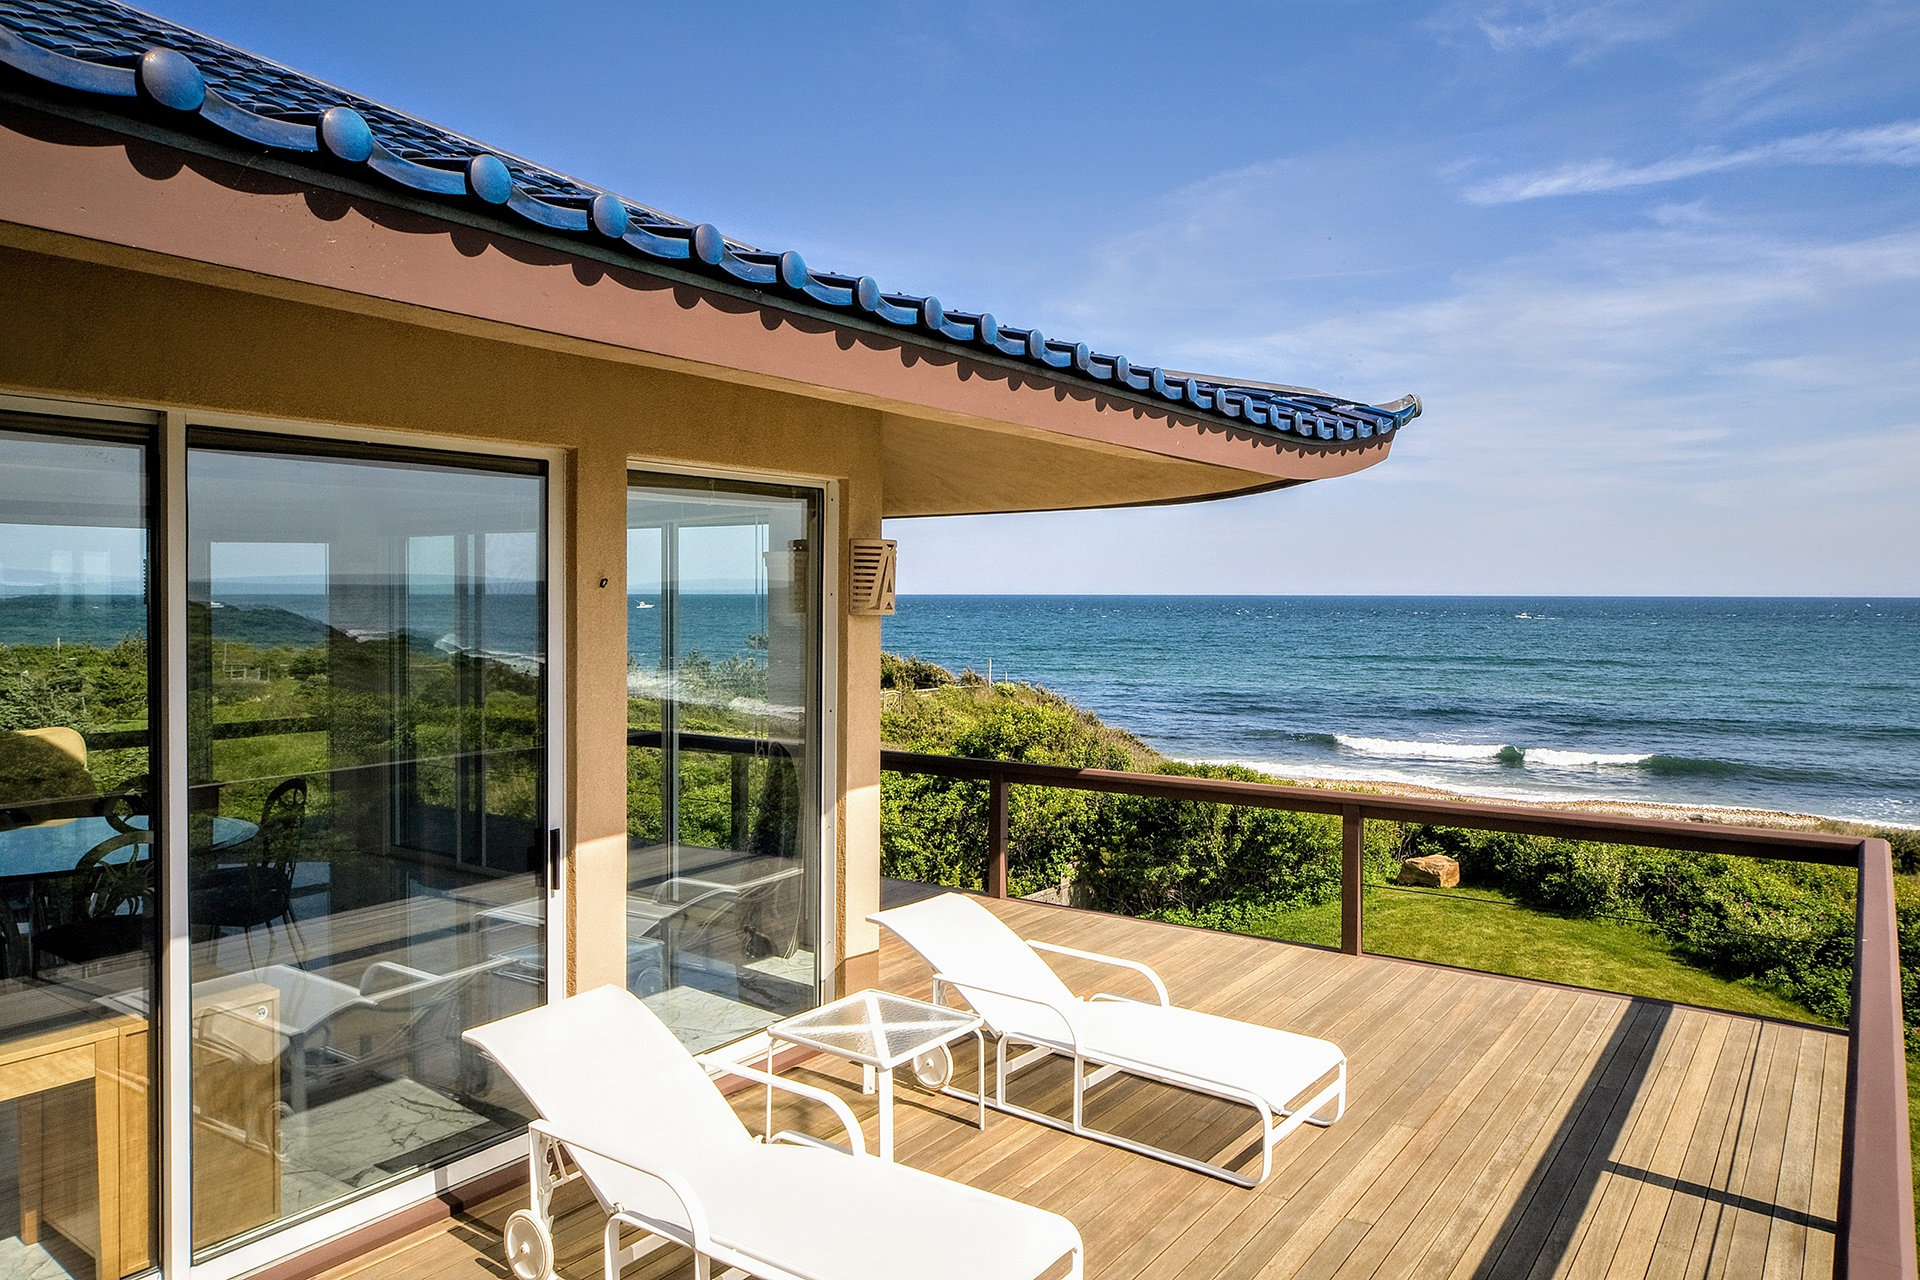 Subtle Asian influences are evident in this view from the residence's deck.